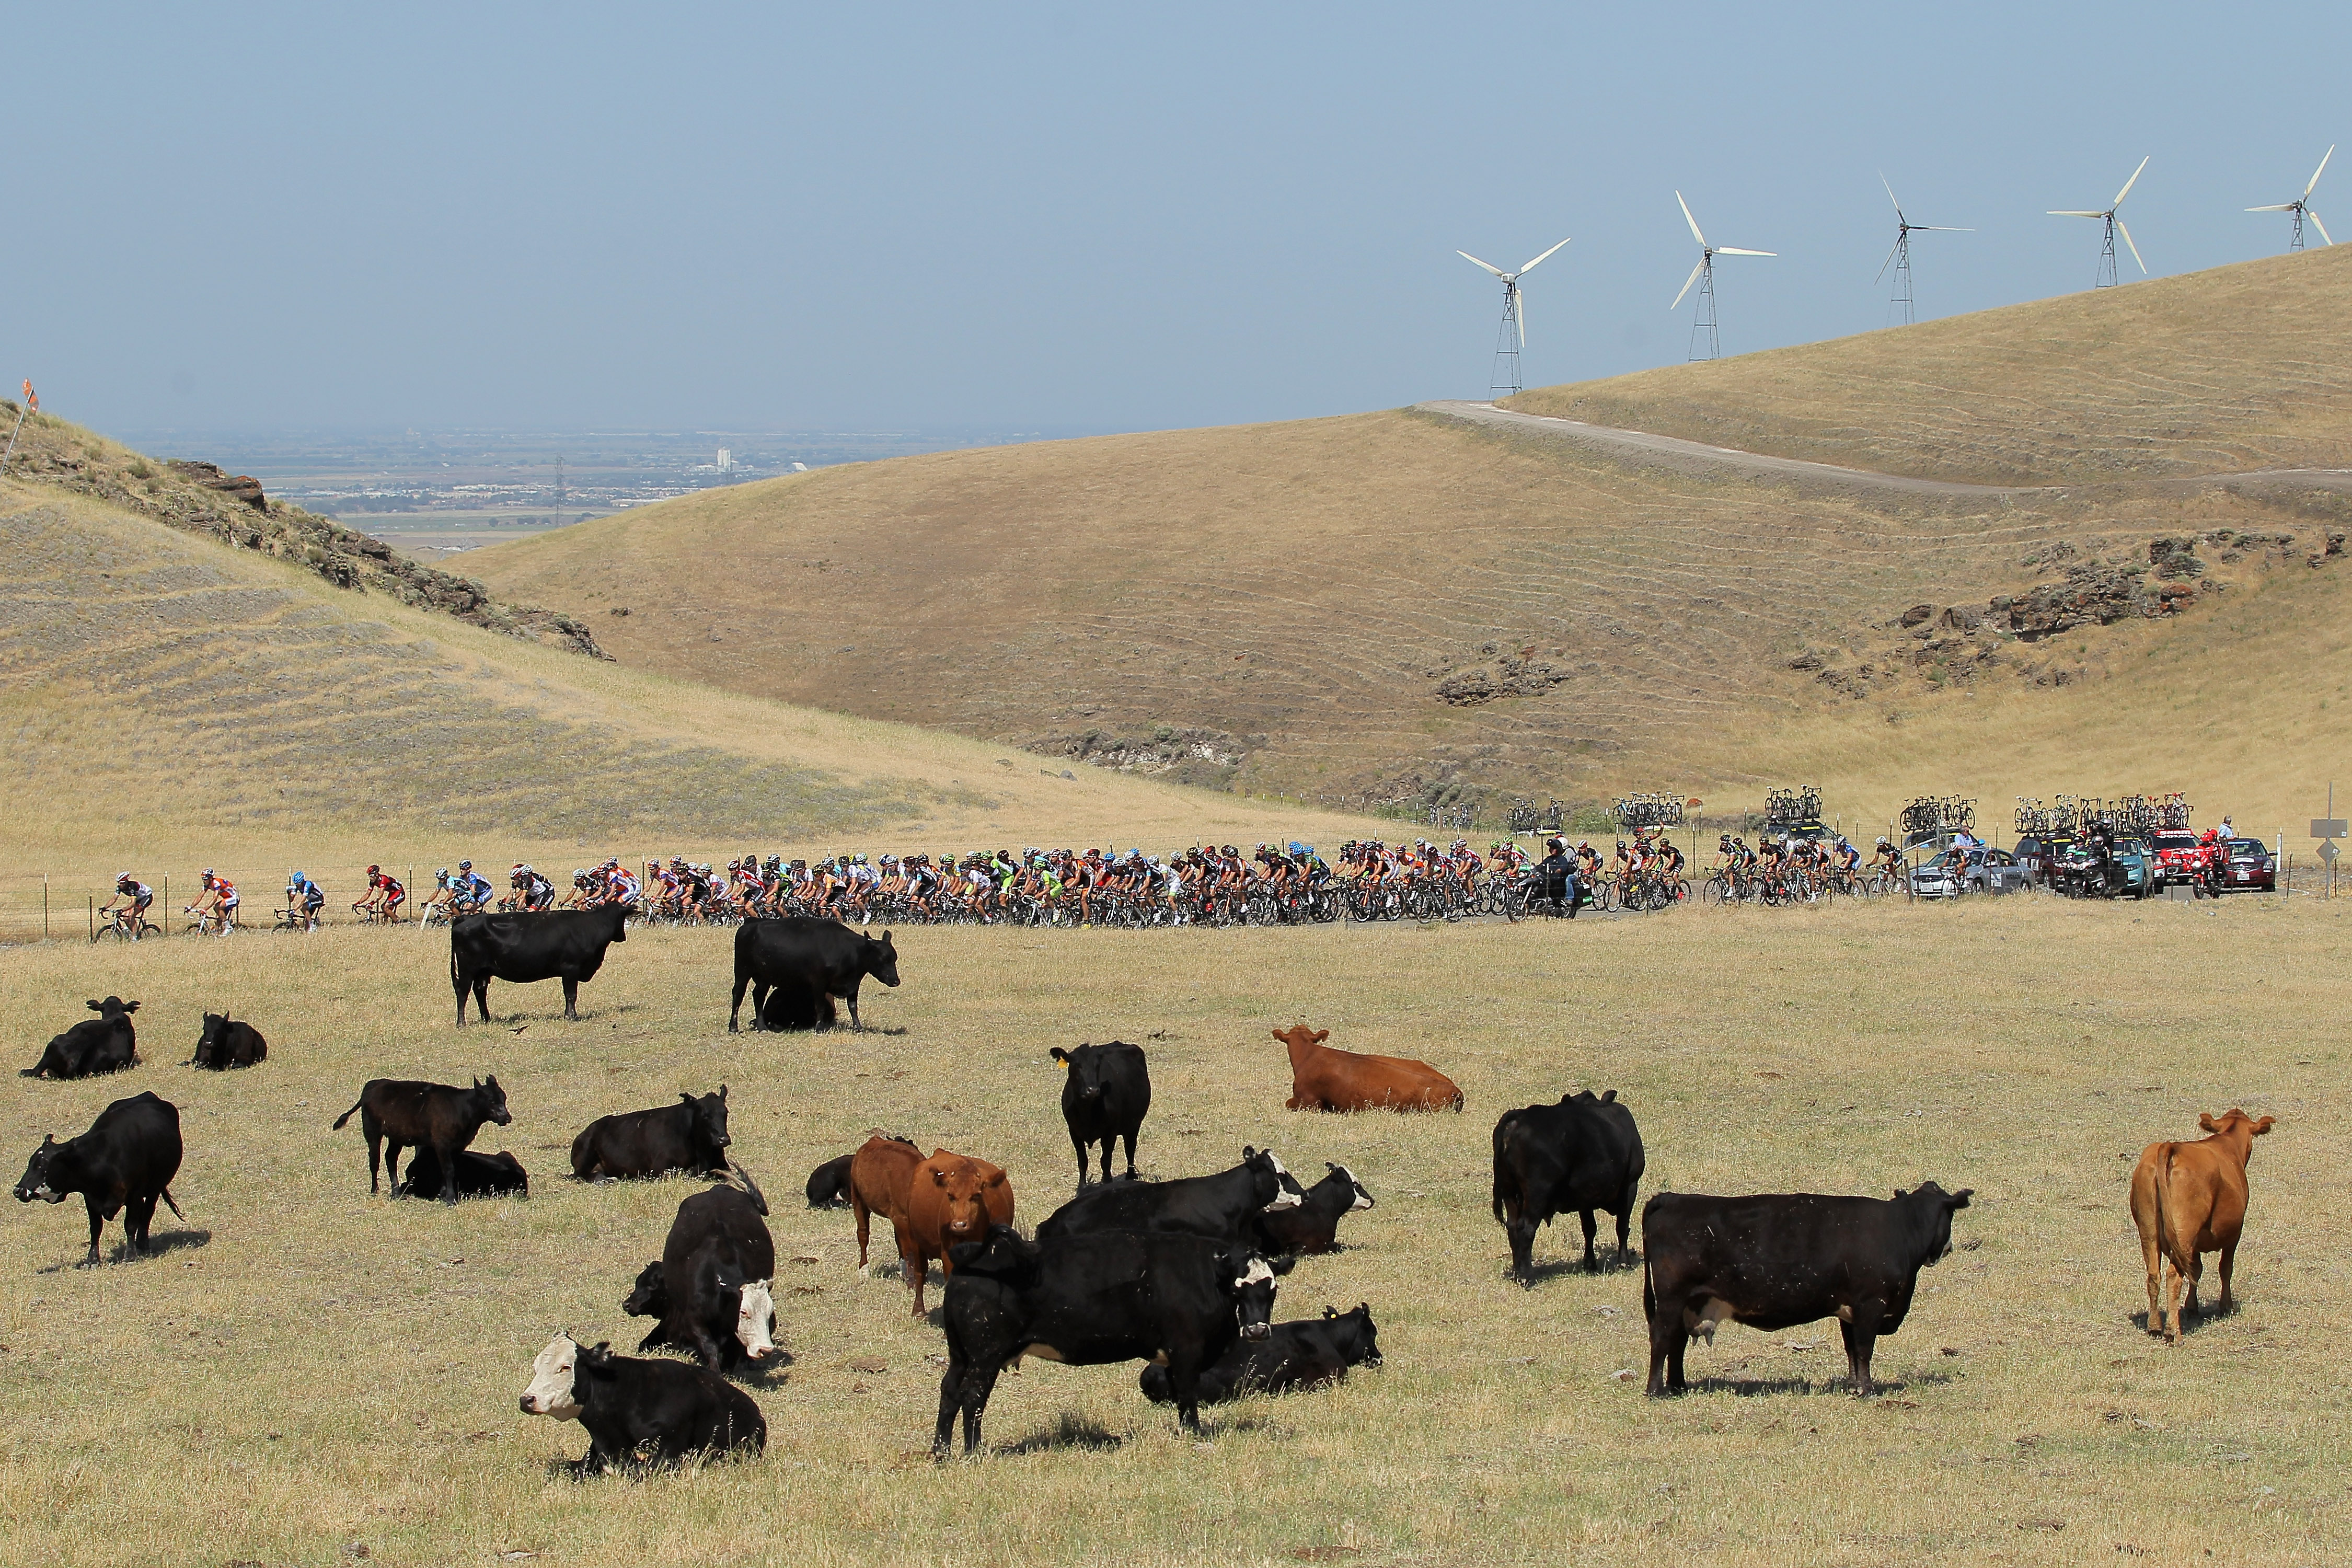 LIVERMORE, CA - MAY 15:  The peloton passes a herd of cows as windmills loom in the background as they climb Patterson Pass during stage three of the Amgen Tour of California from San Jose to Livermore on May 15, 2012 in Livermore, California.  (Photo by Doug Pensinger/Getty Images)